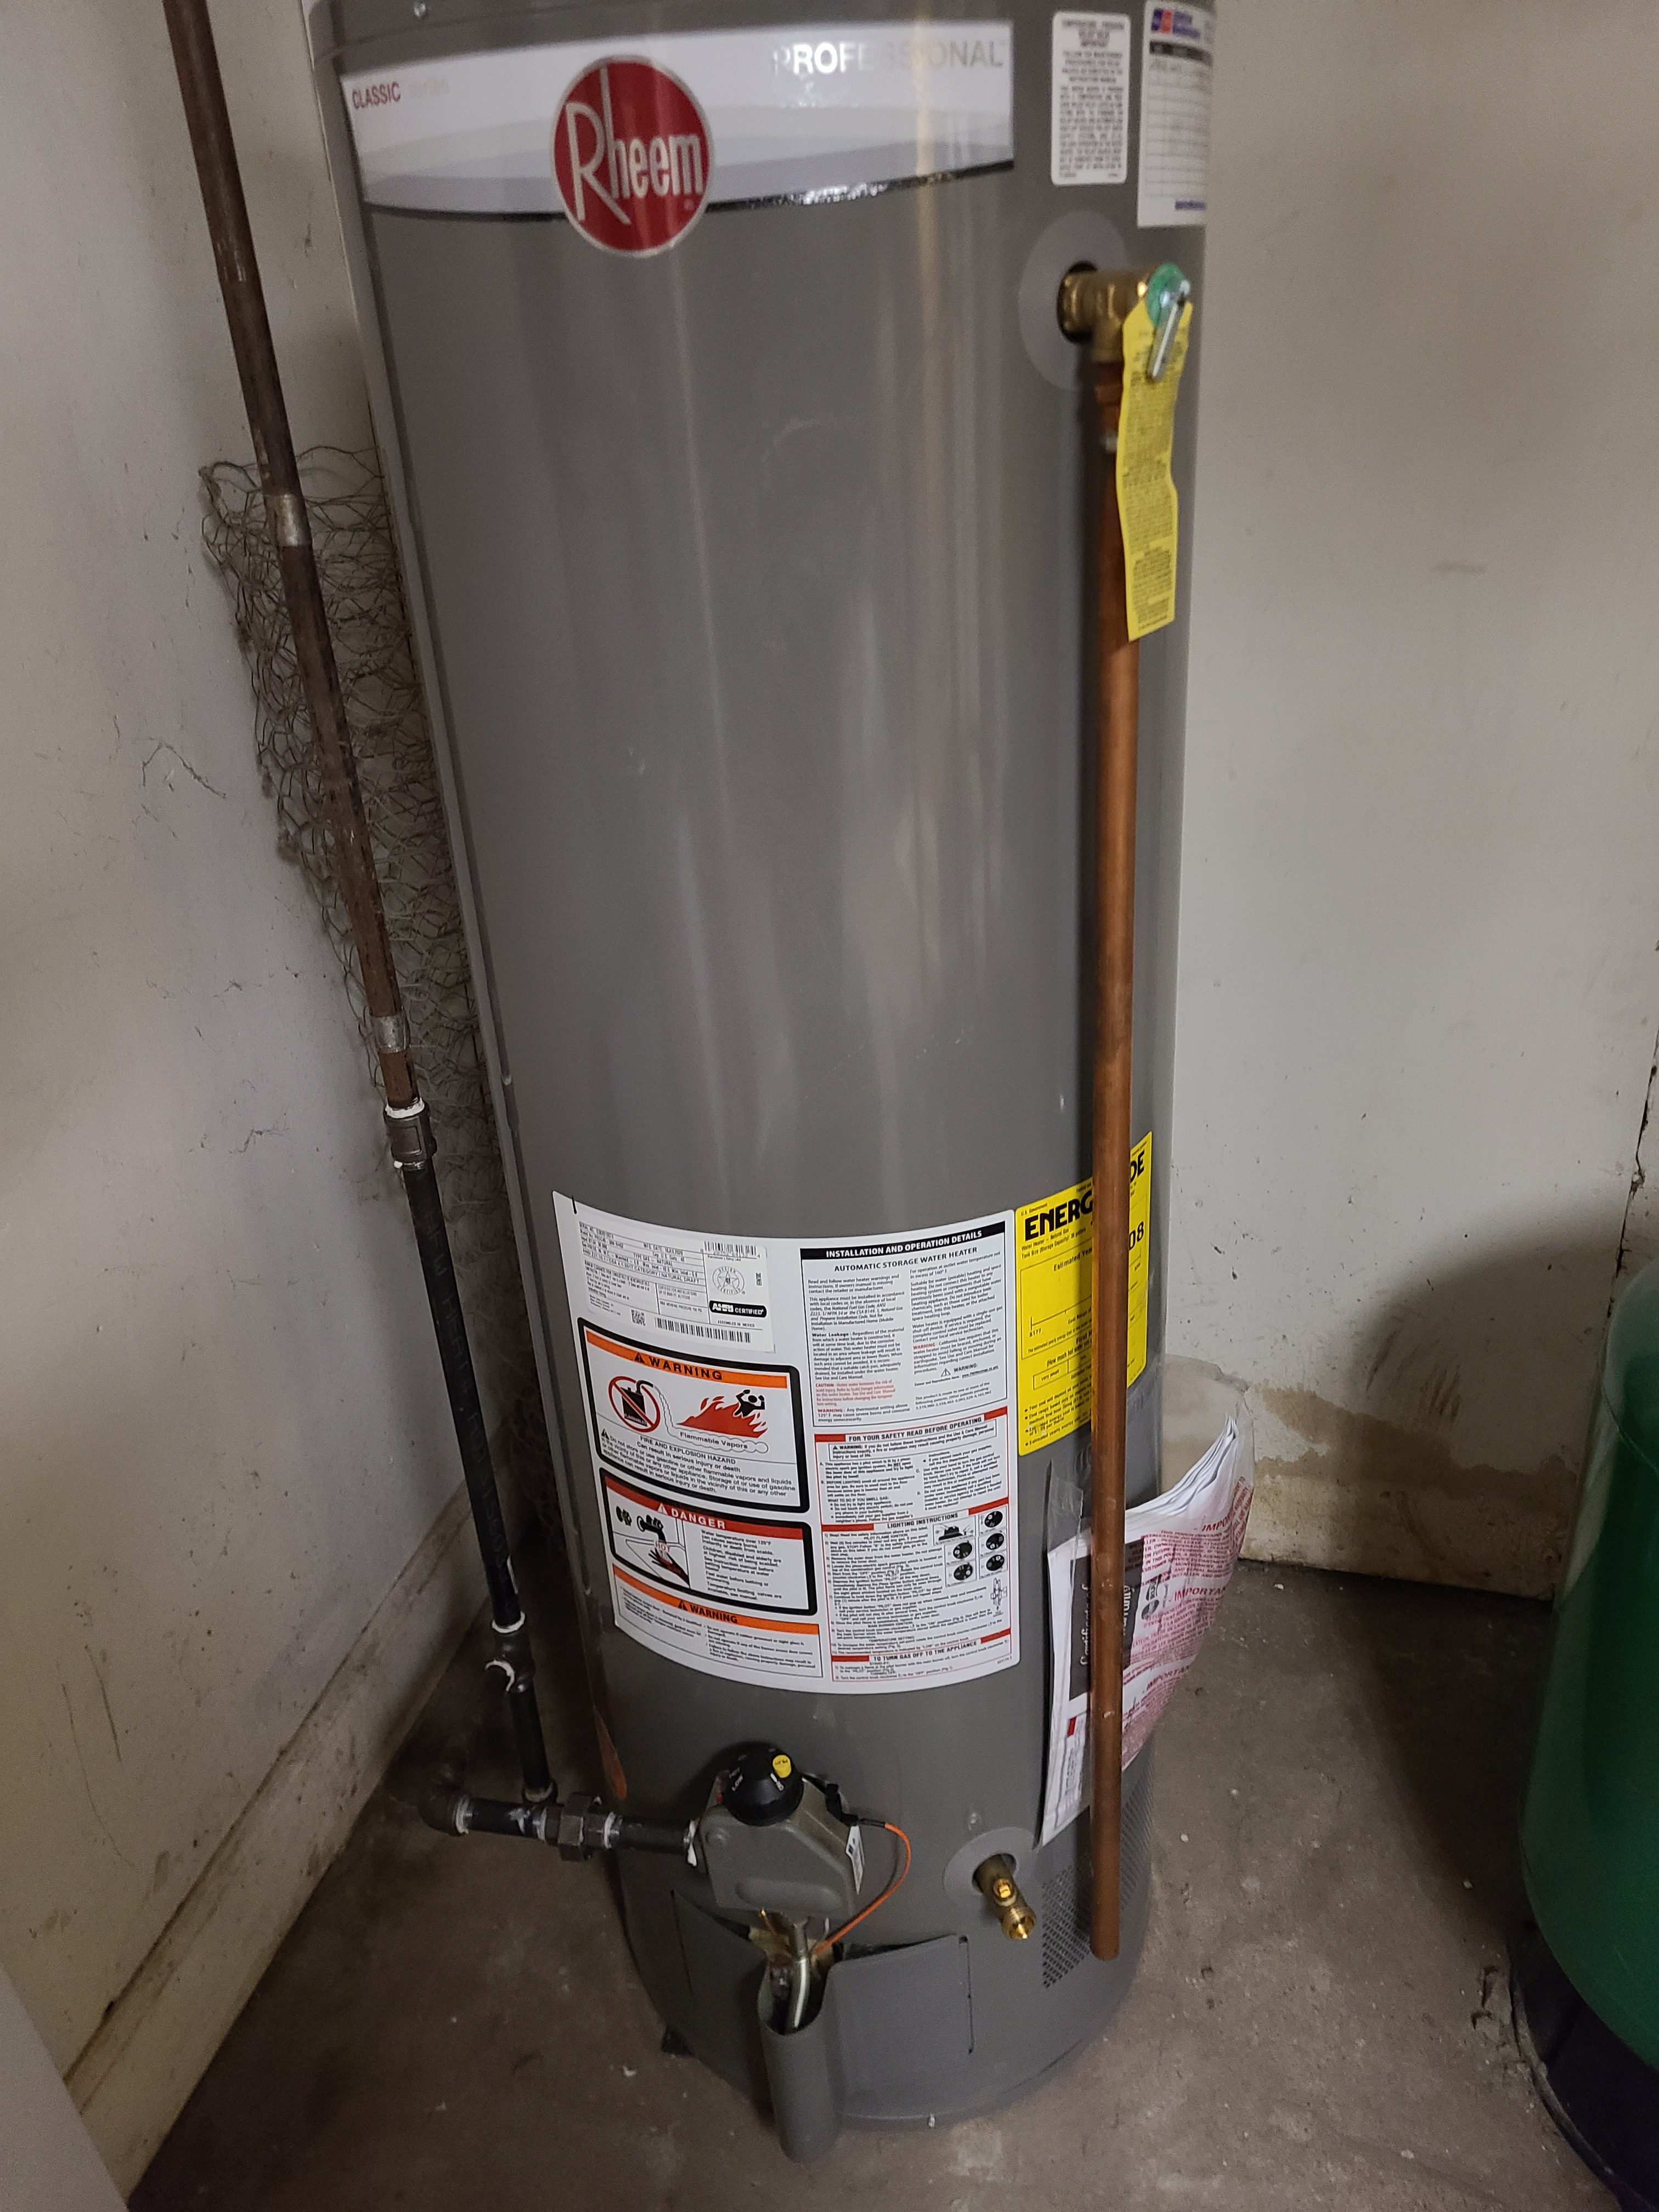 RHEEM water heater with gas valve issues...up and running once again